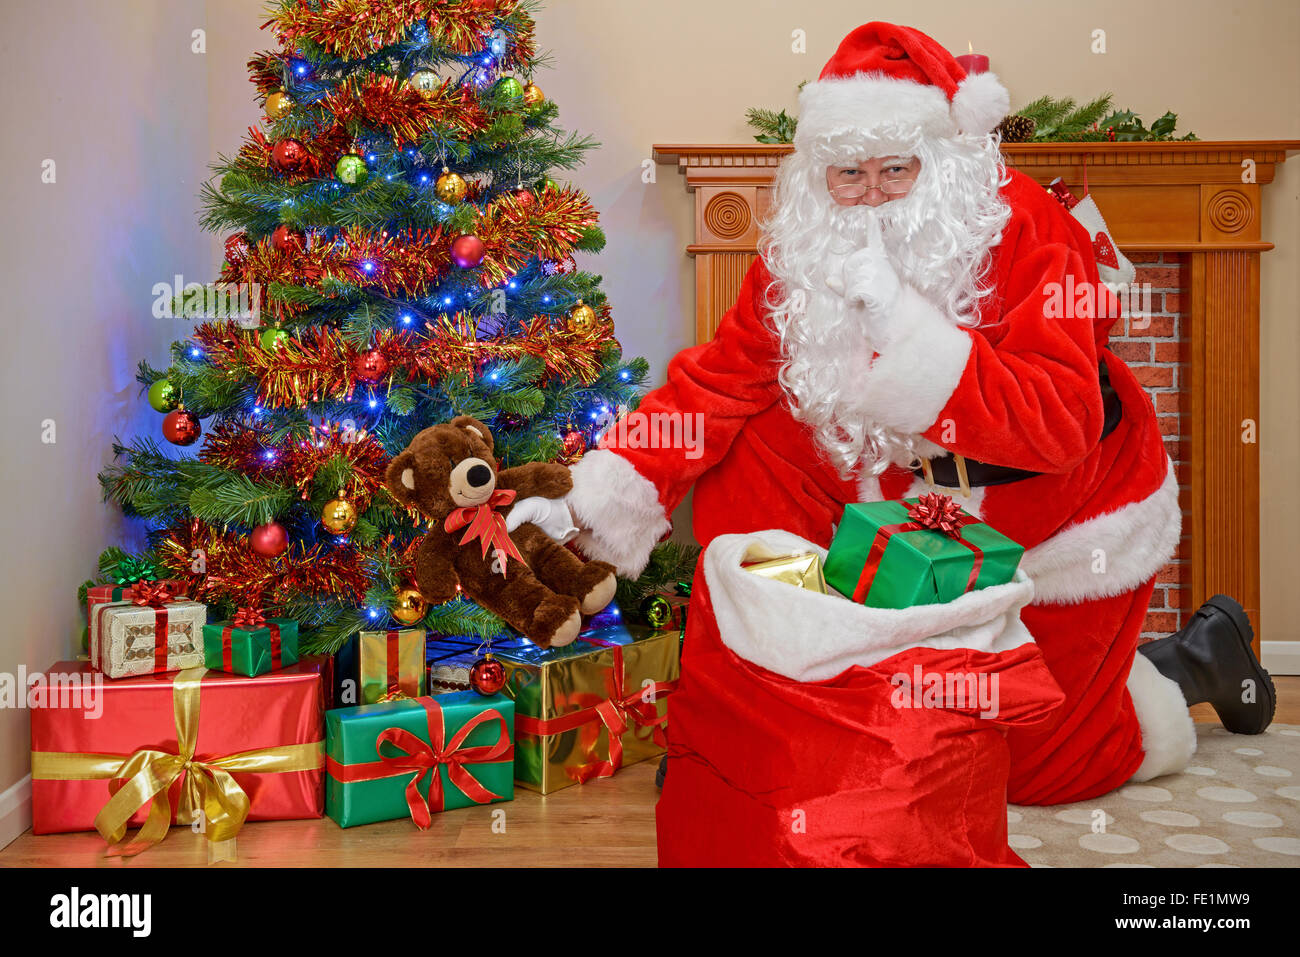 santa claus or father christmas putting presents under the tree stock photo 94695365 alamy - Santa Claus With Presents